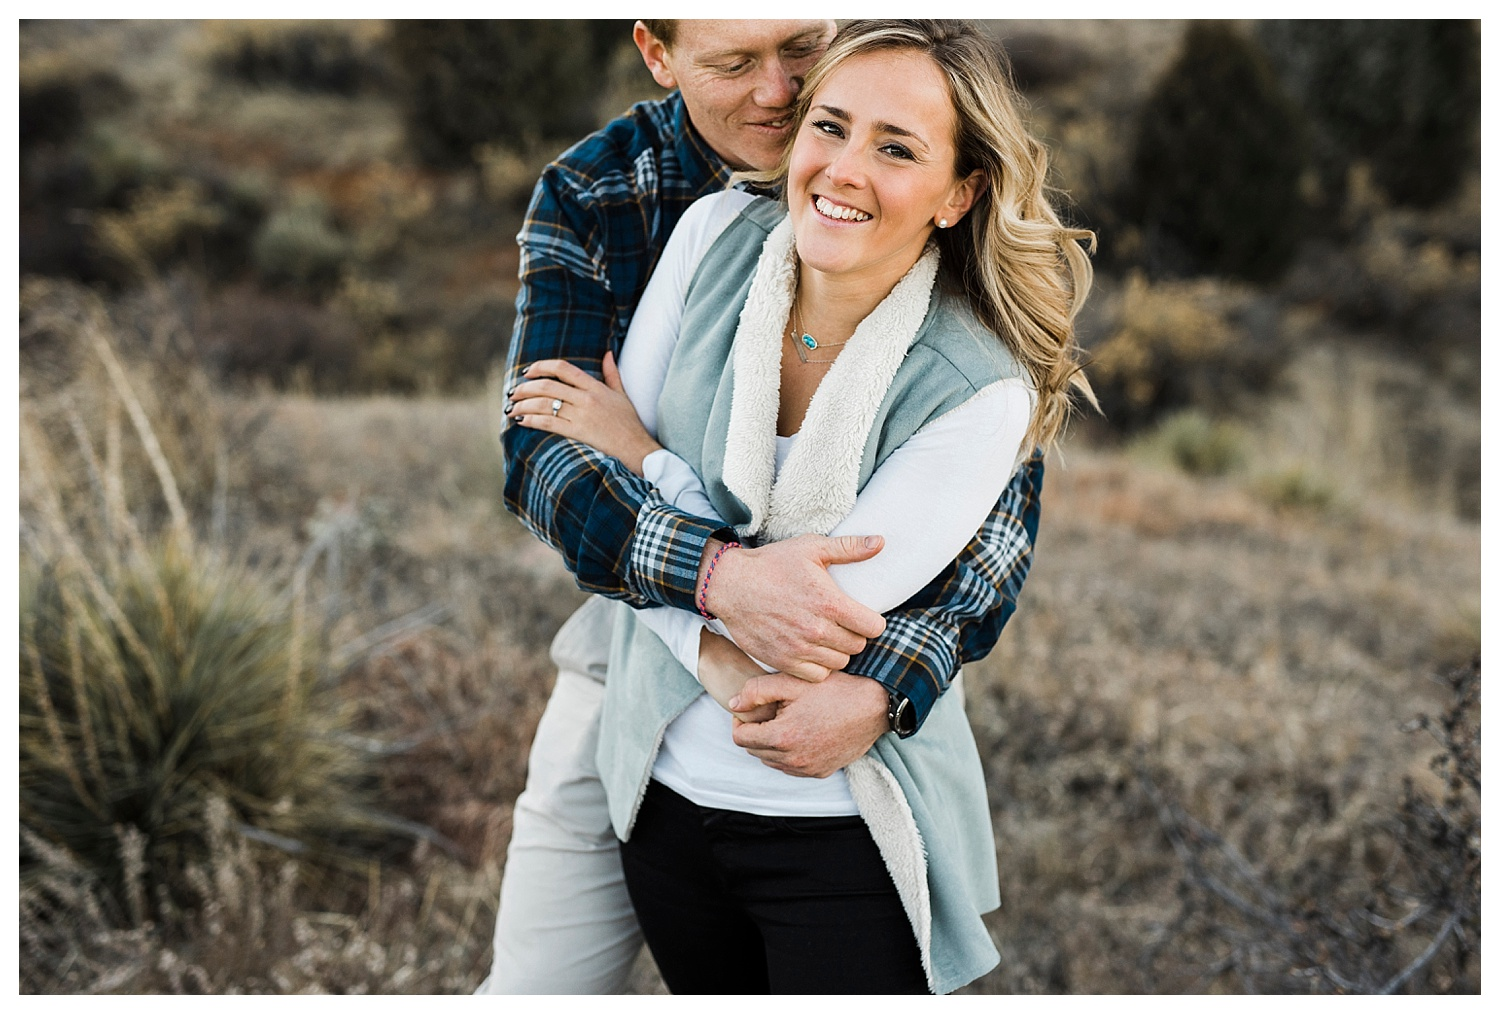 Mt_Falcon_Engagement_Session_Colorado_Engaged_Photography_Apollo_Fields_Wedding_Photographers_002.jpg